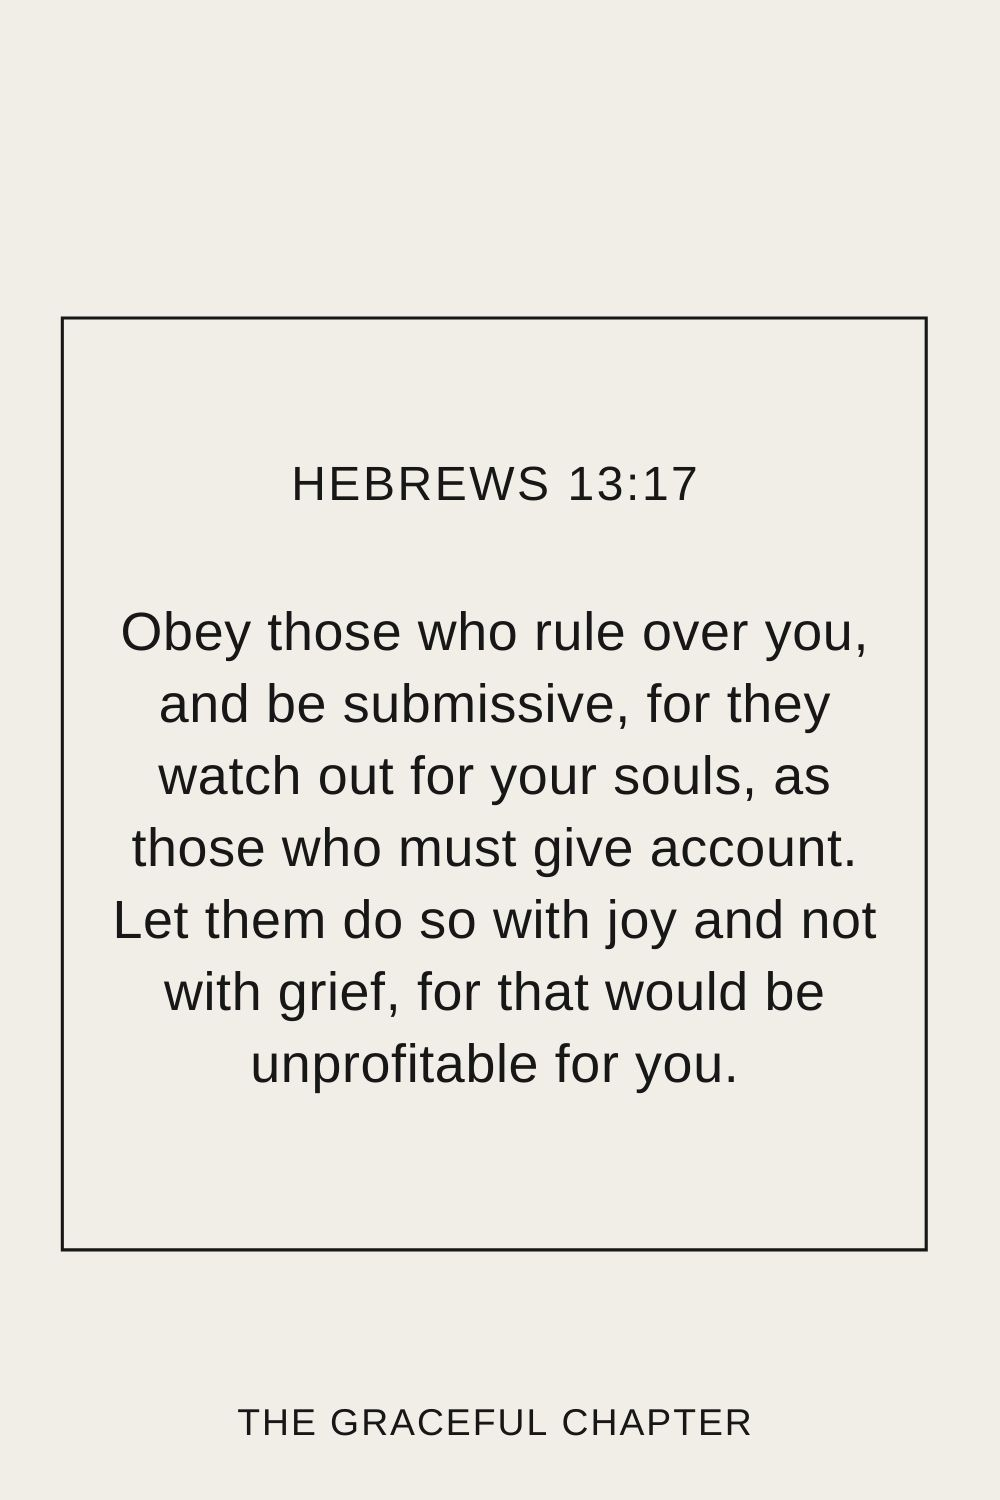 Obey those who rule over you, and be submissive, for they watch out for your souls, as those who must give account. Let them do so with joy and not with grief, for that would be unprofitable for you. Hebrews 13:17